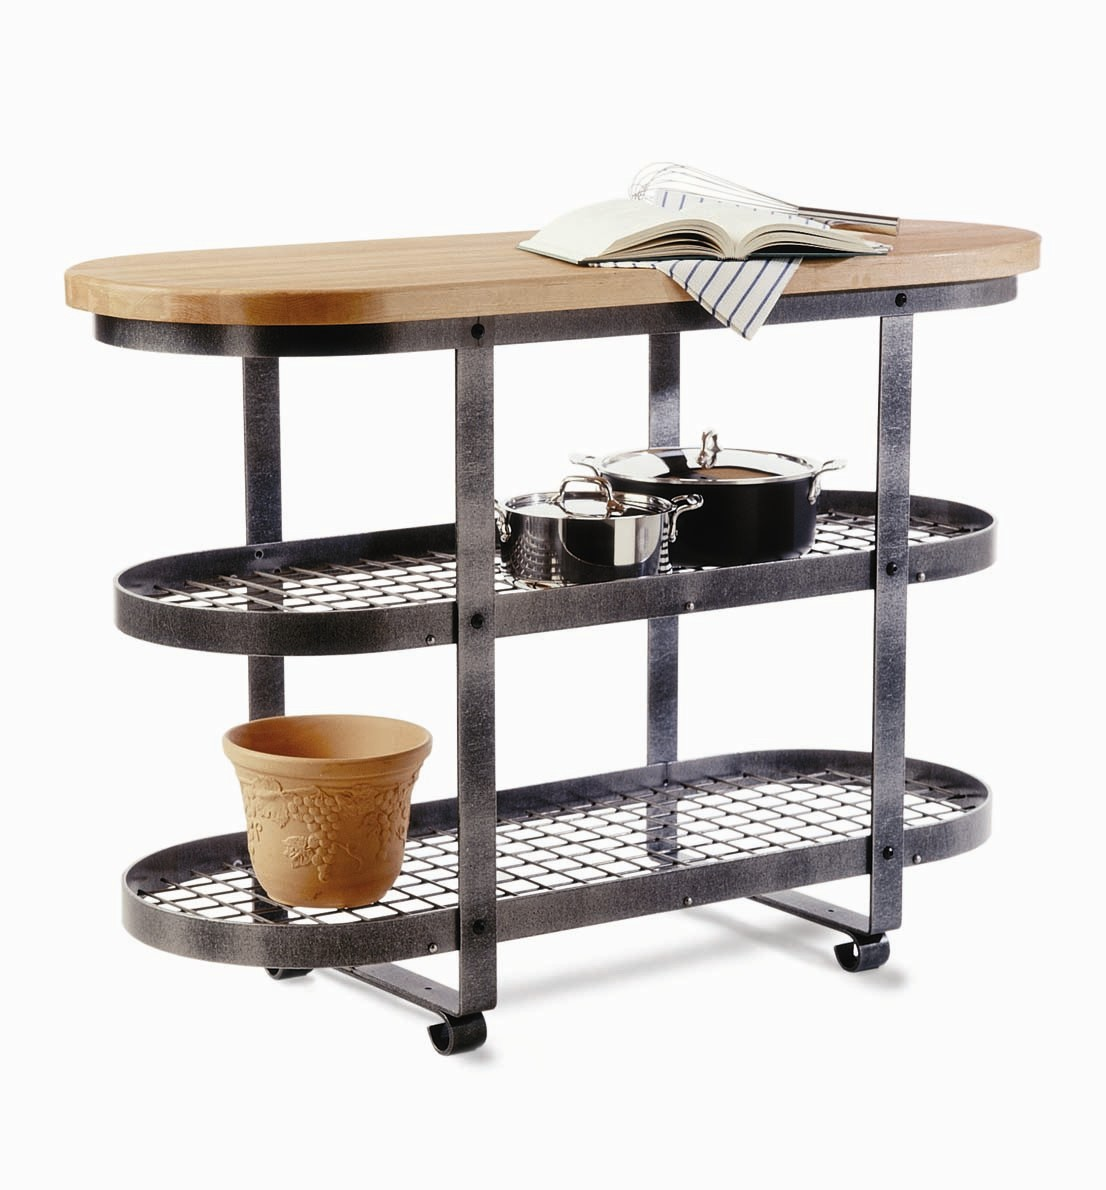 Enclume Eastern Maple & Hammered Steel Gourmet IslandMaple